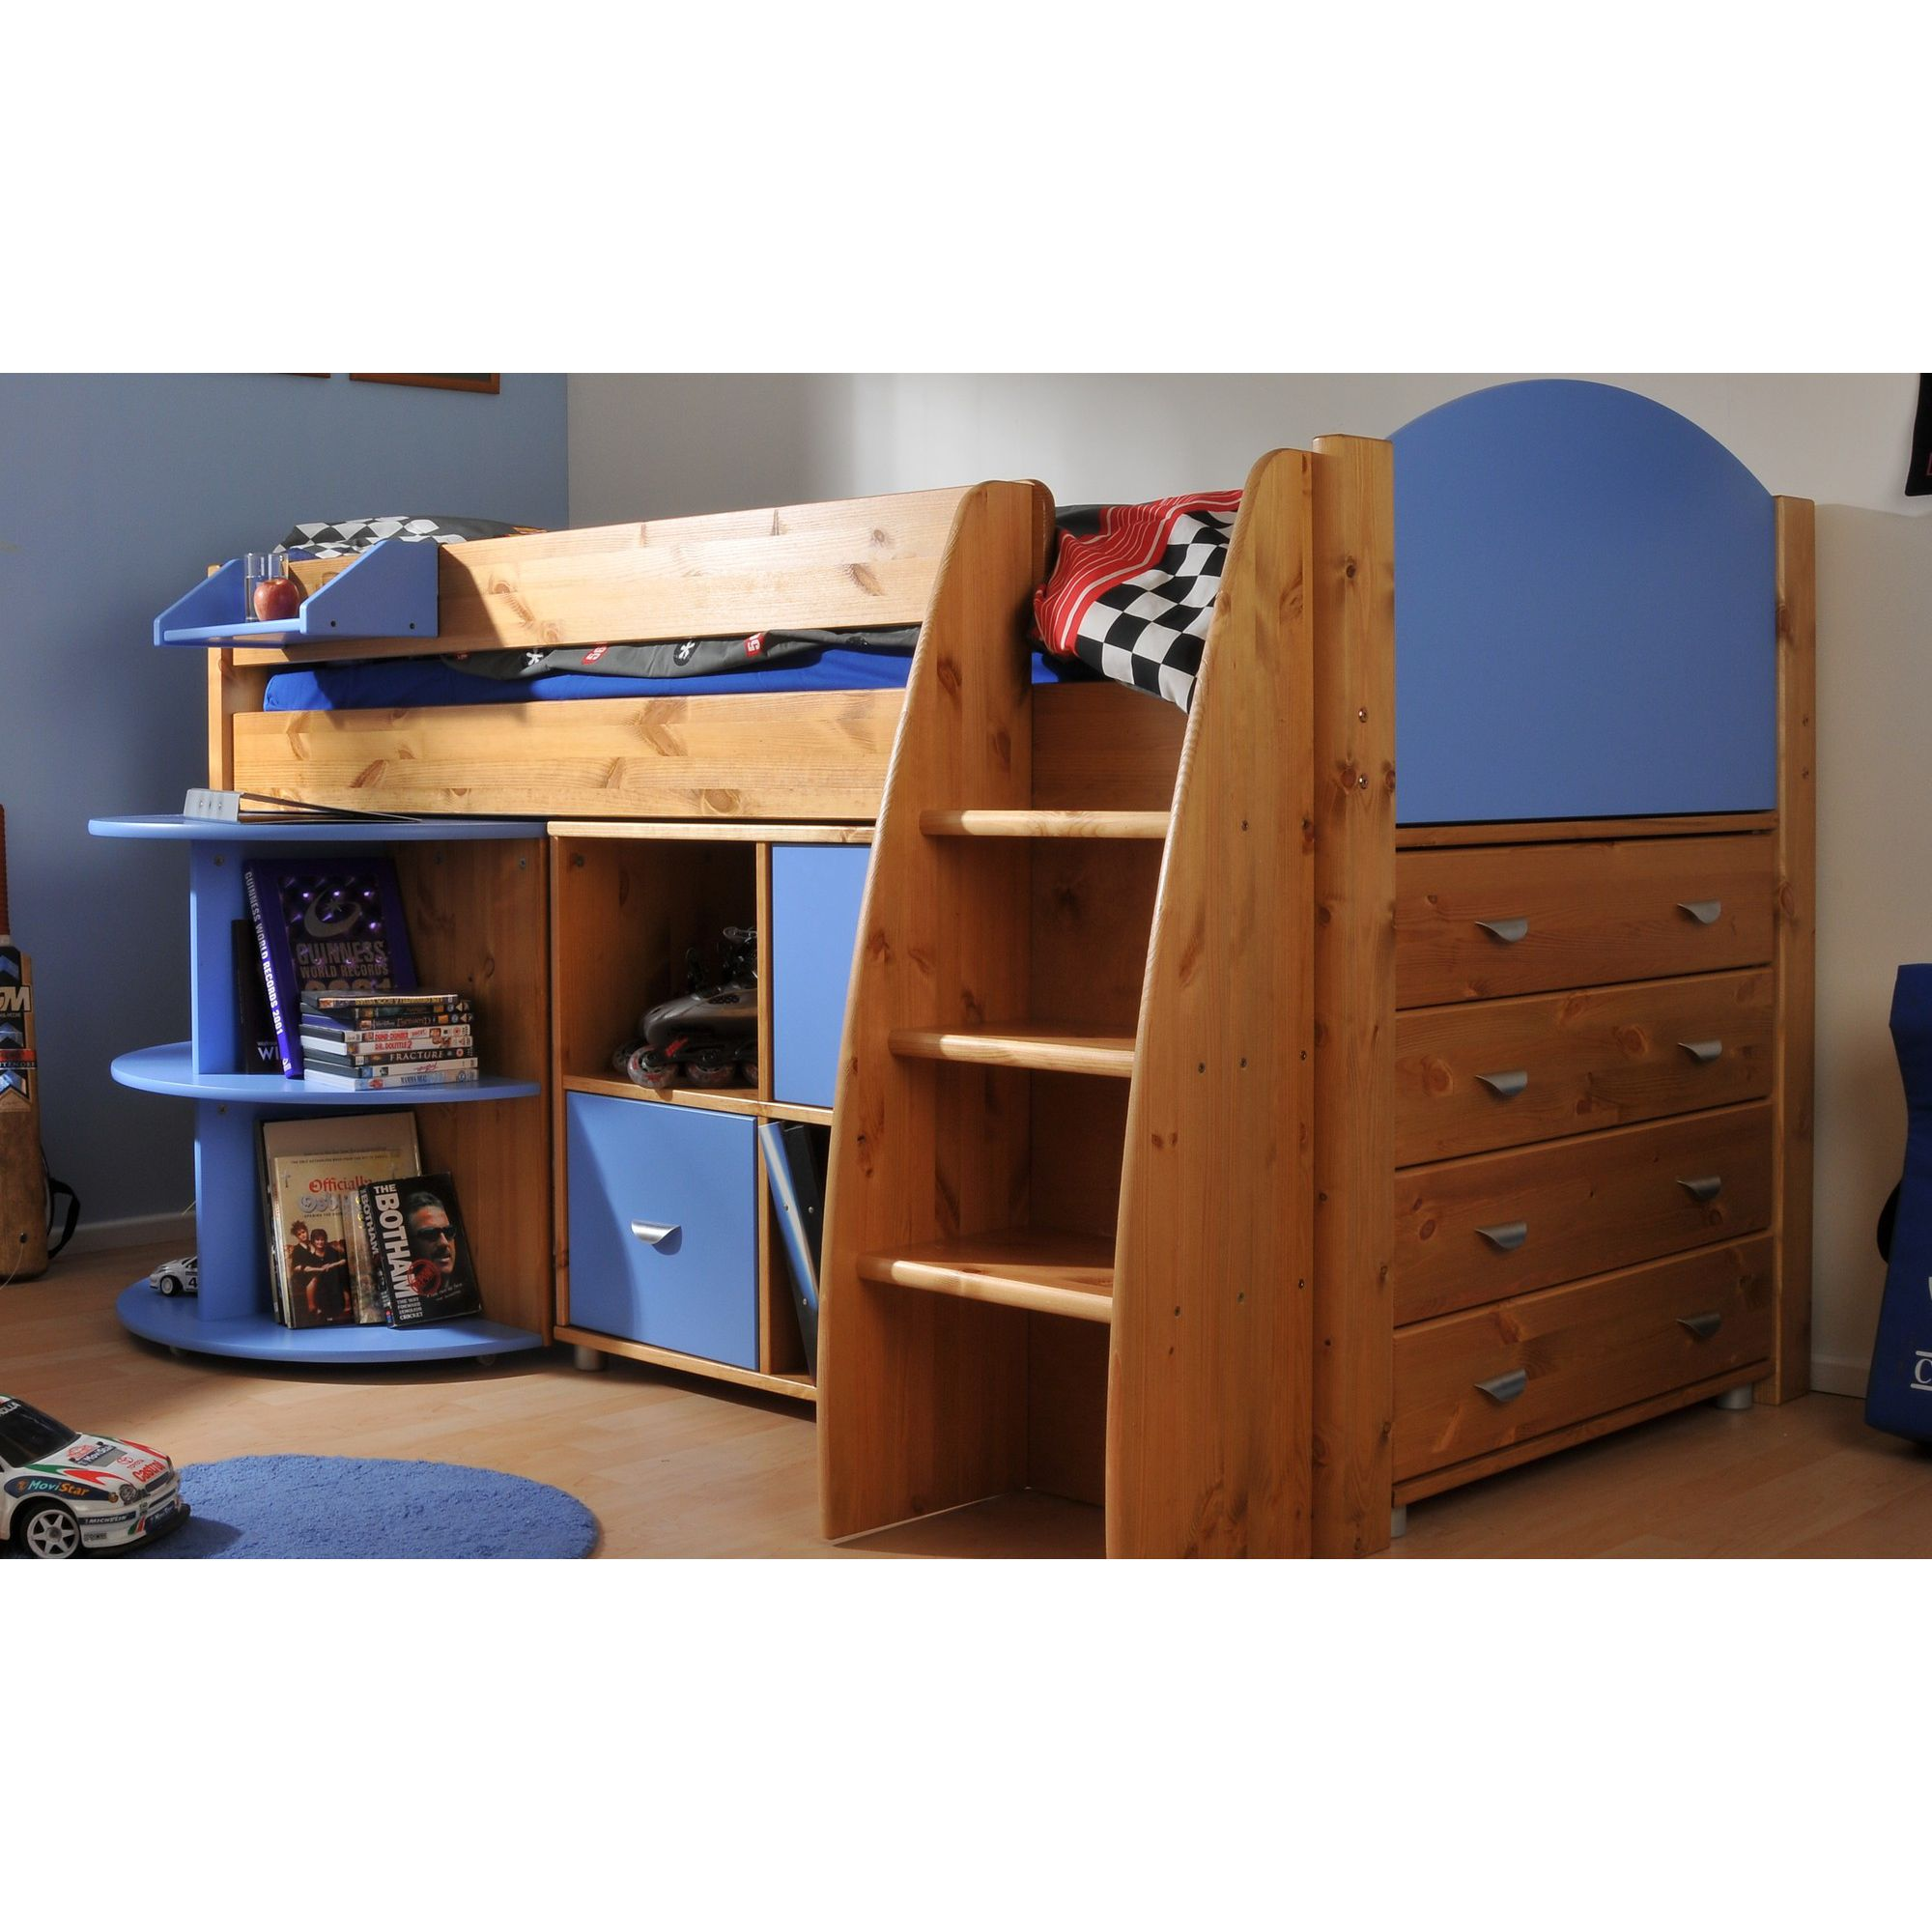 Stompa Rondo Mid Sleeper with 4 Drawer Chest, Cube Unit and Extending Desk - Blue - White at Tesco Direct